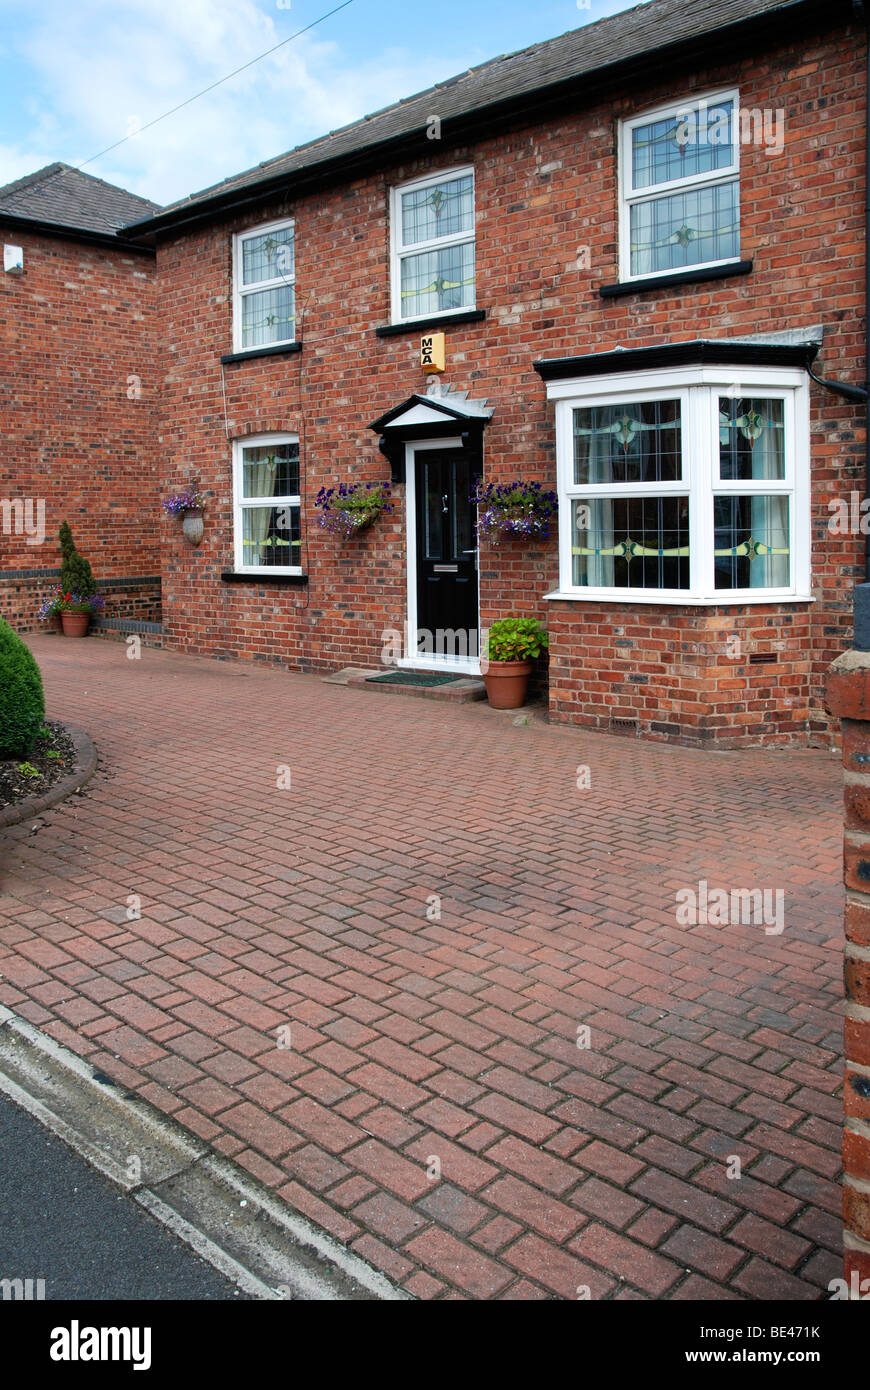 a front garden paved over with block paving stones, uk - Stock Image